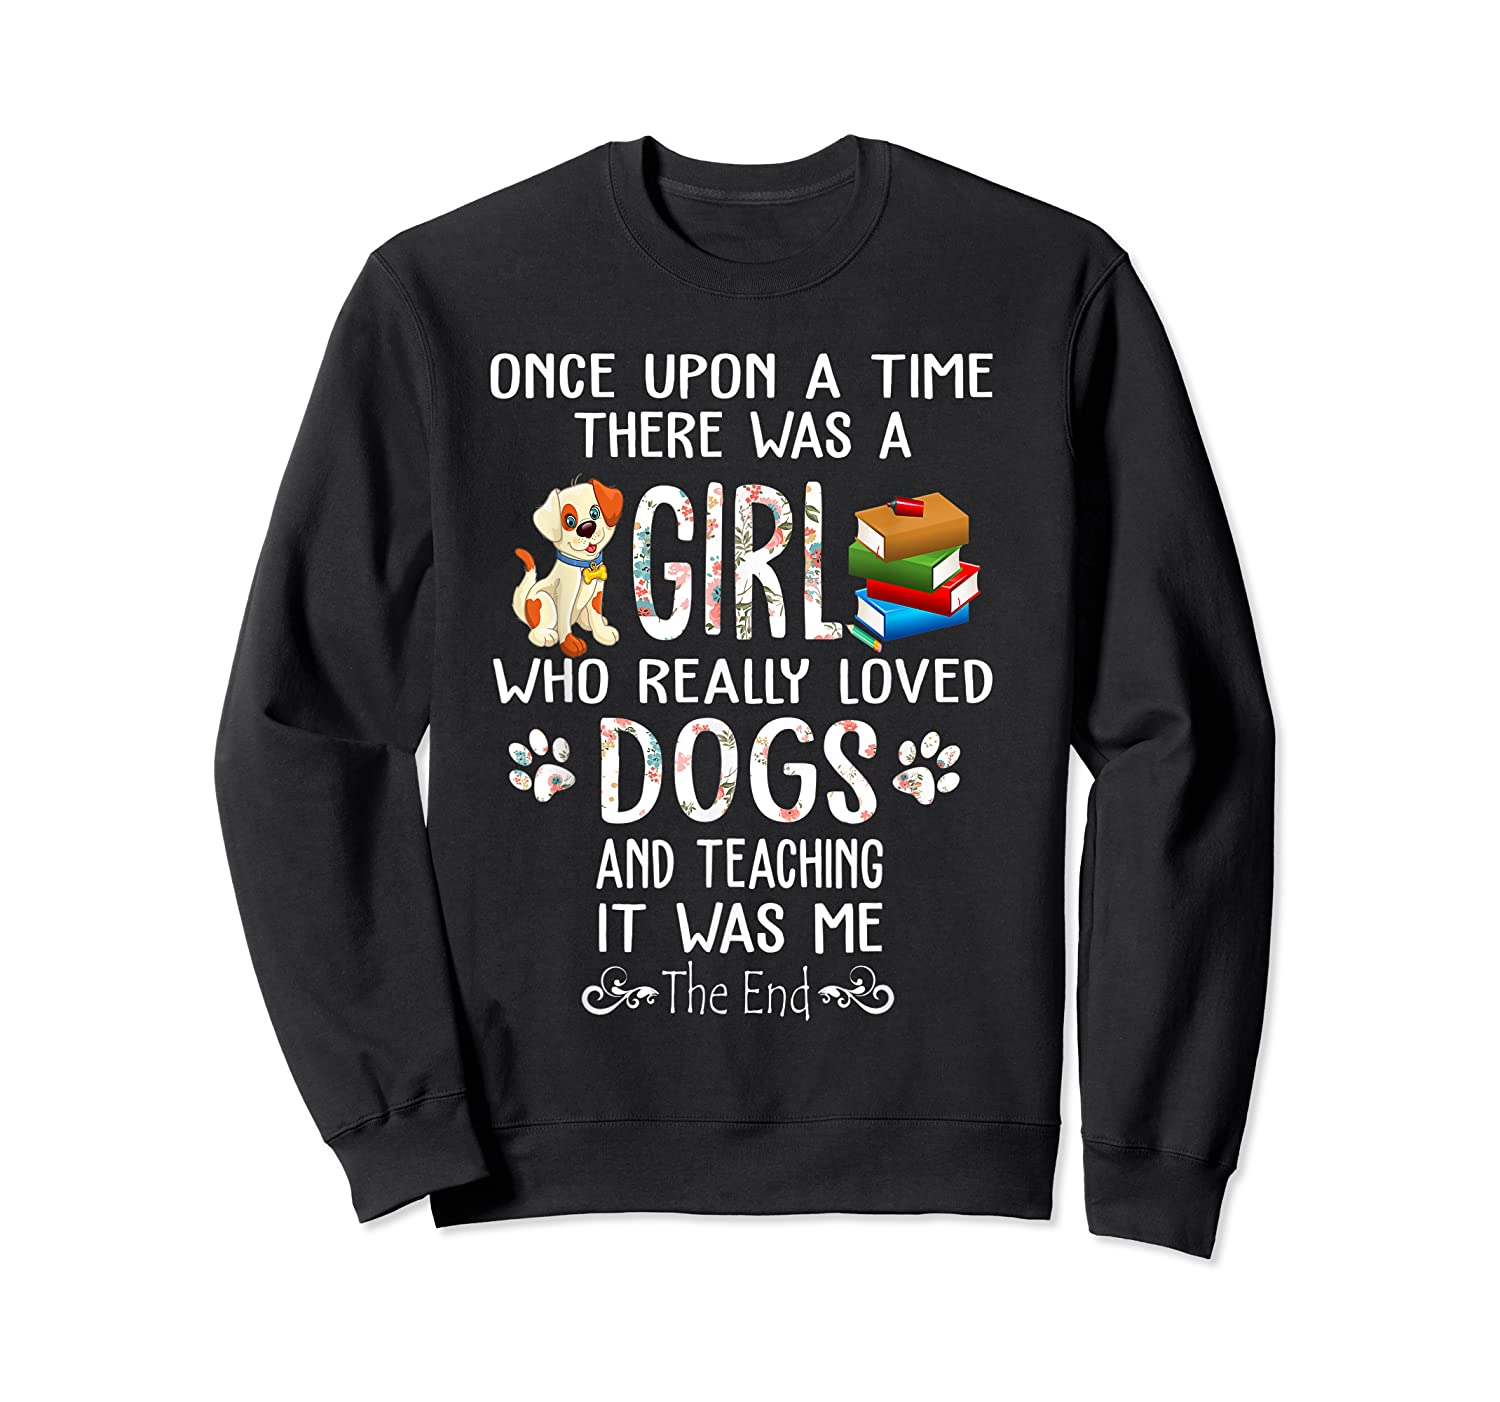 Once Upon A Time There Was A Girl Love Dogs Teaching Shirt T Shirt Crewneck Sweater